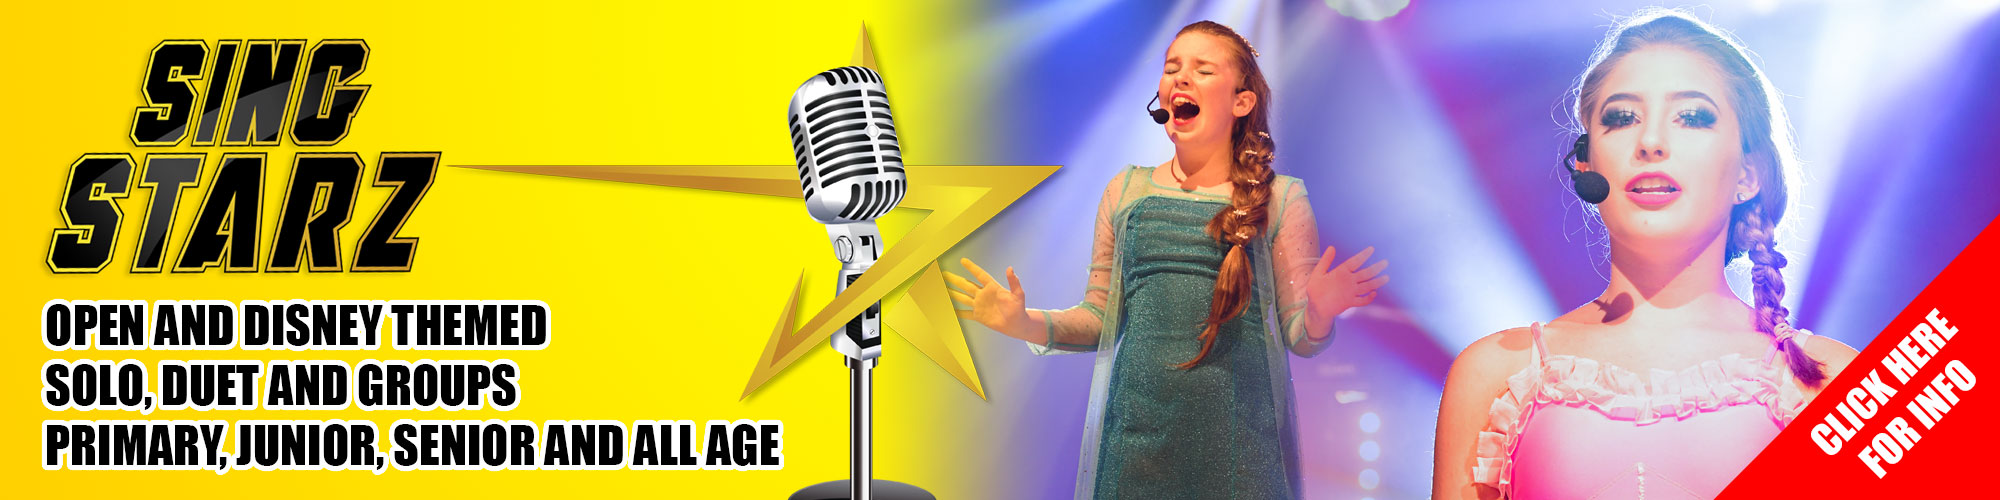 Don't just dance but love to Sing? IFDPA's Singing Competition 'Sing Starz' where solo, duets and groups of aspiring singers will have the chance to shine and show off their musical talents in Open and Disney themed categories.